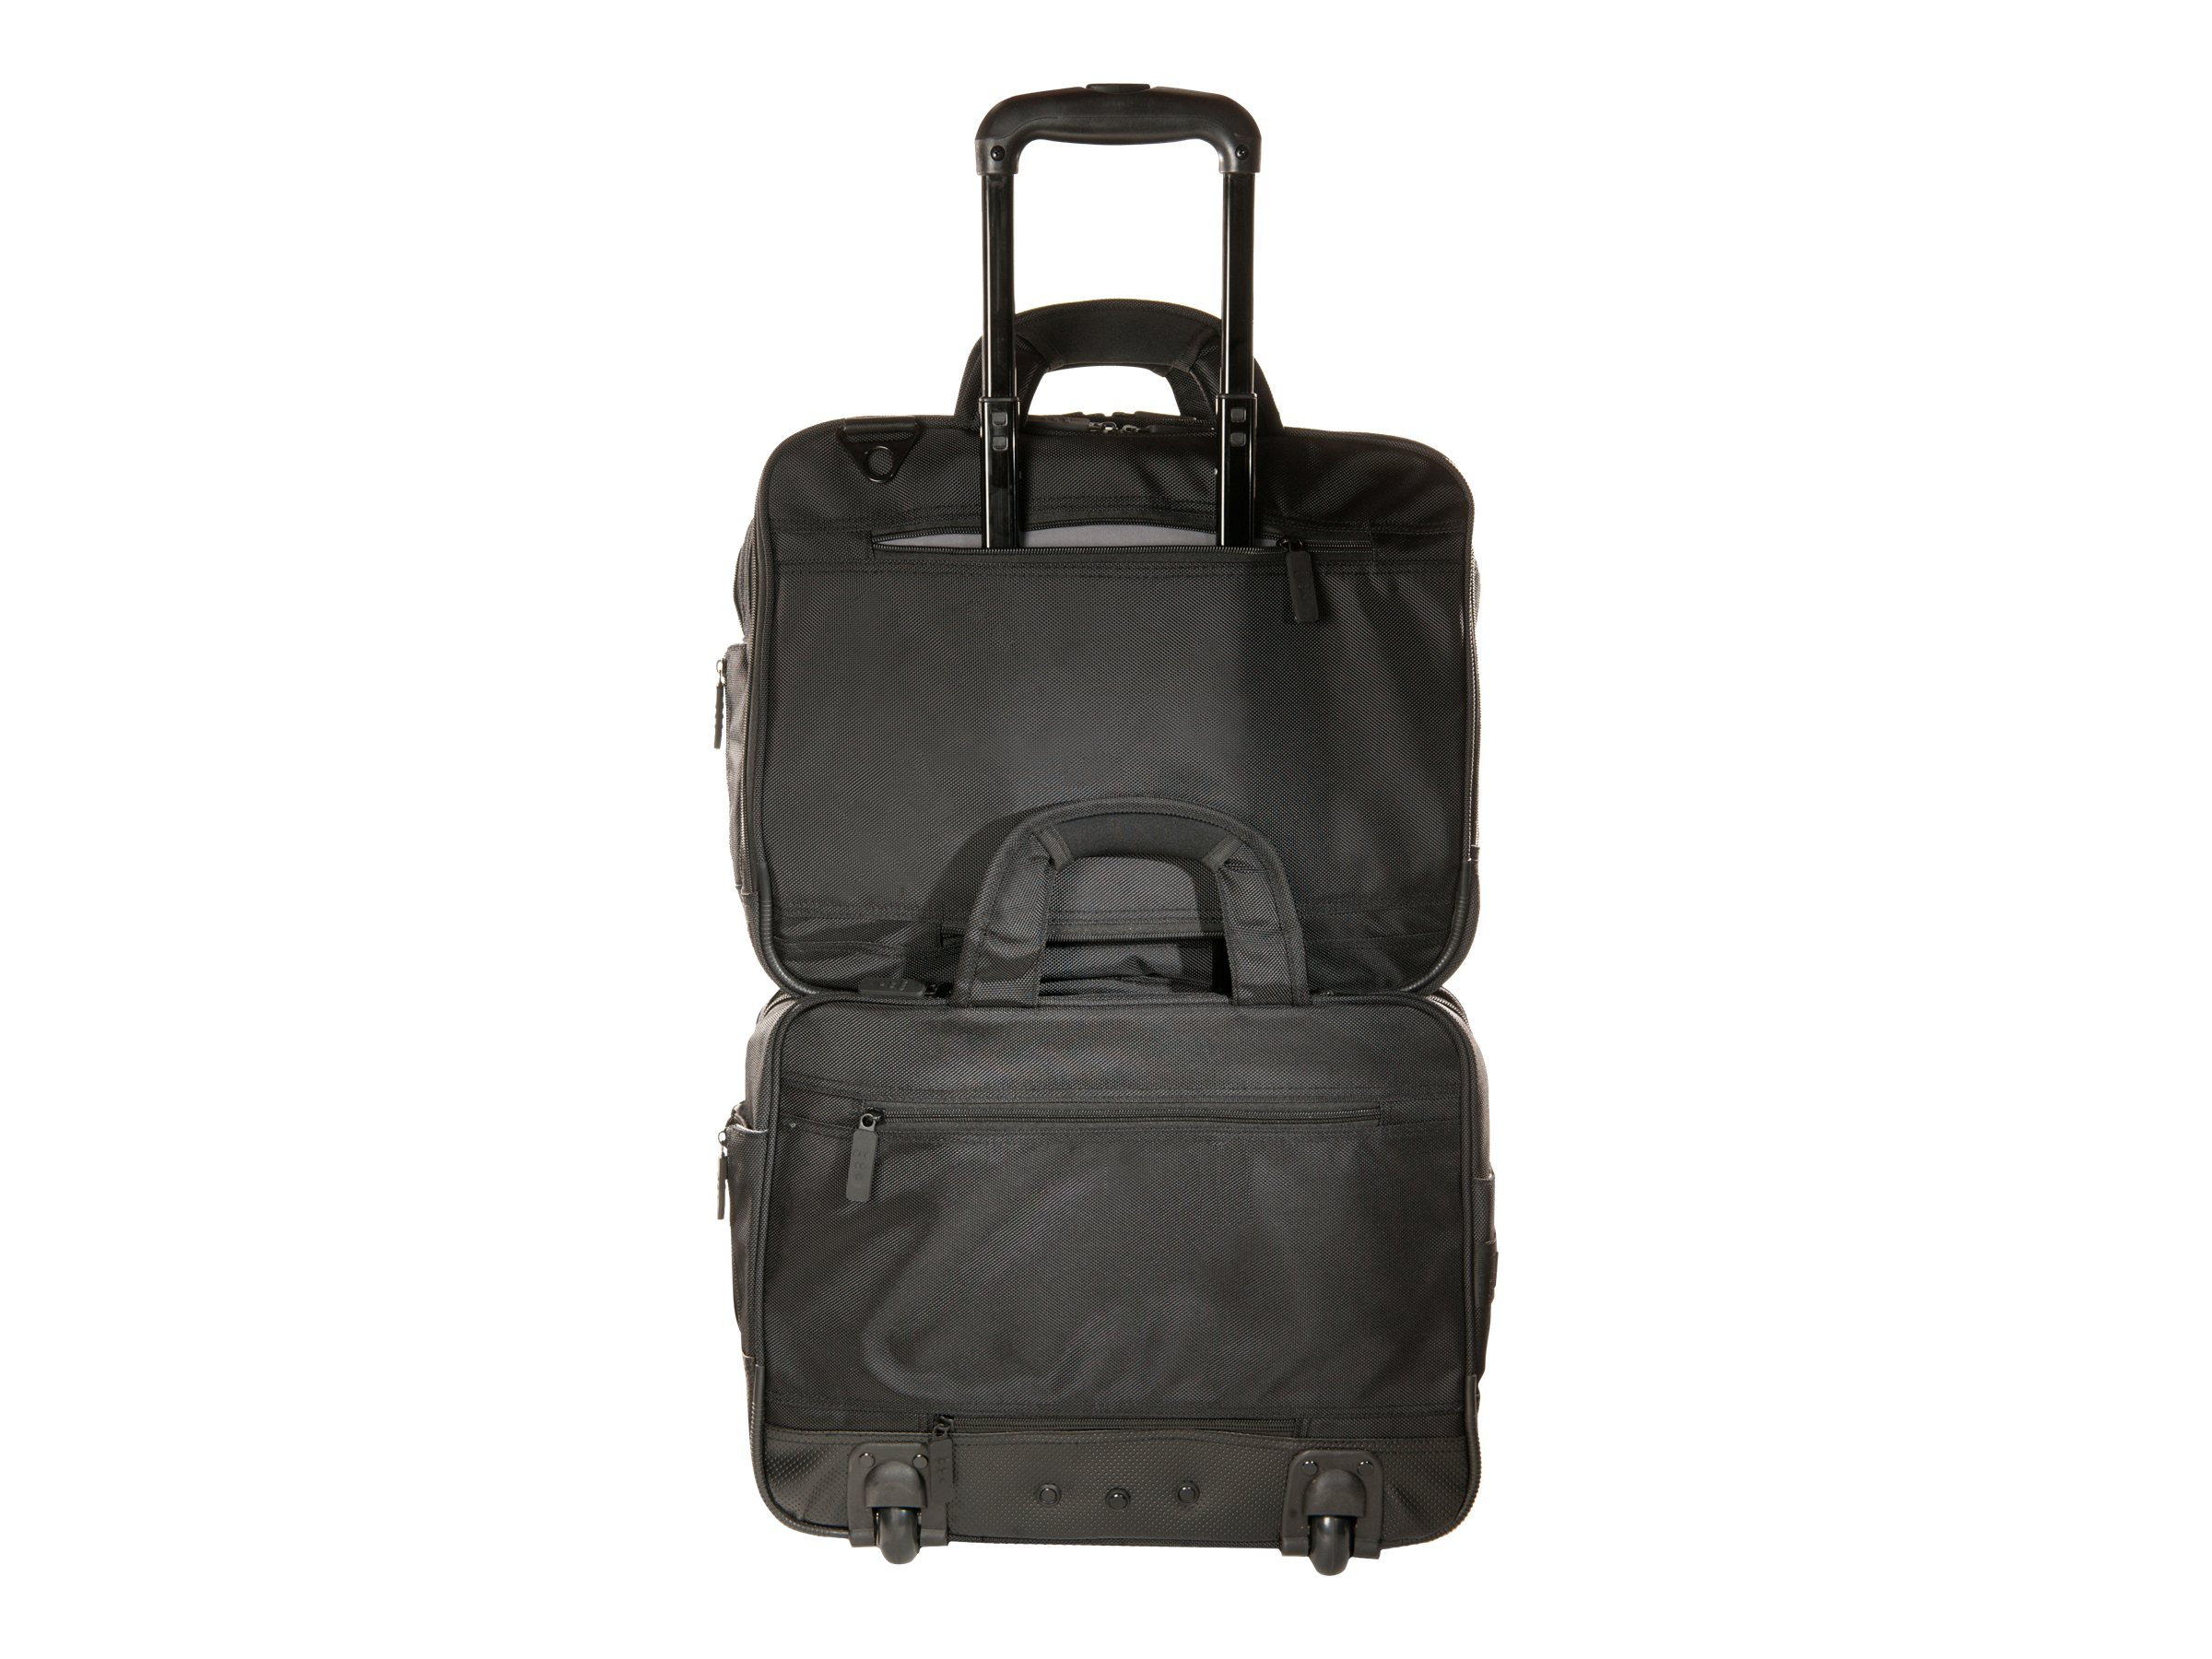 Eco Style Luxe Top Load Case Checkpoint, ELUX-TL14-CF